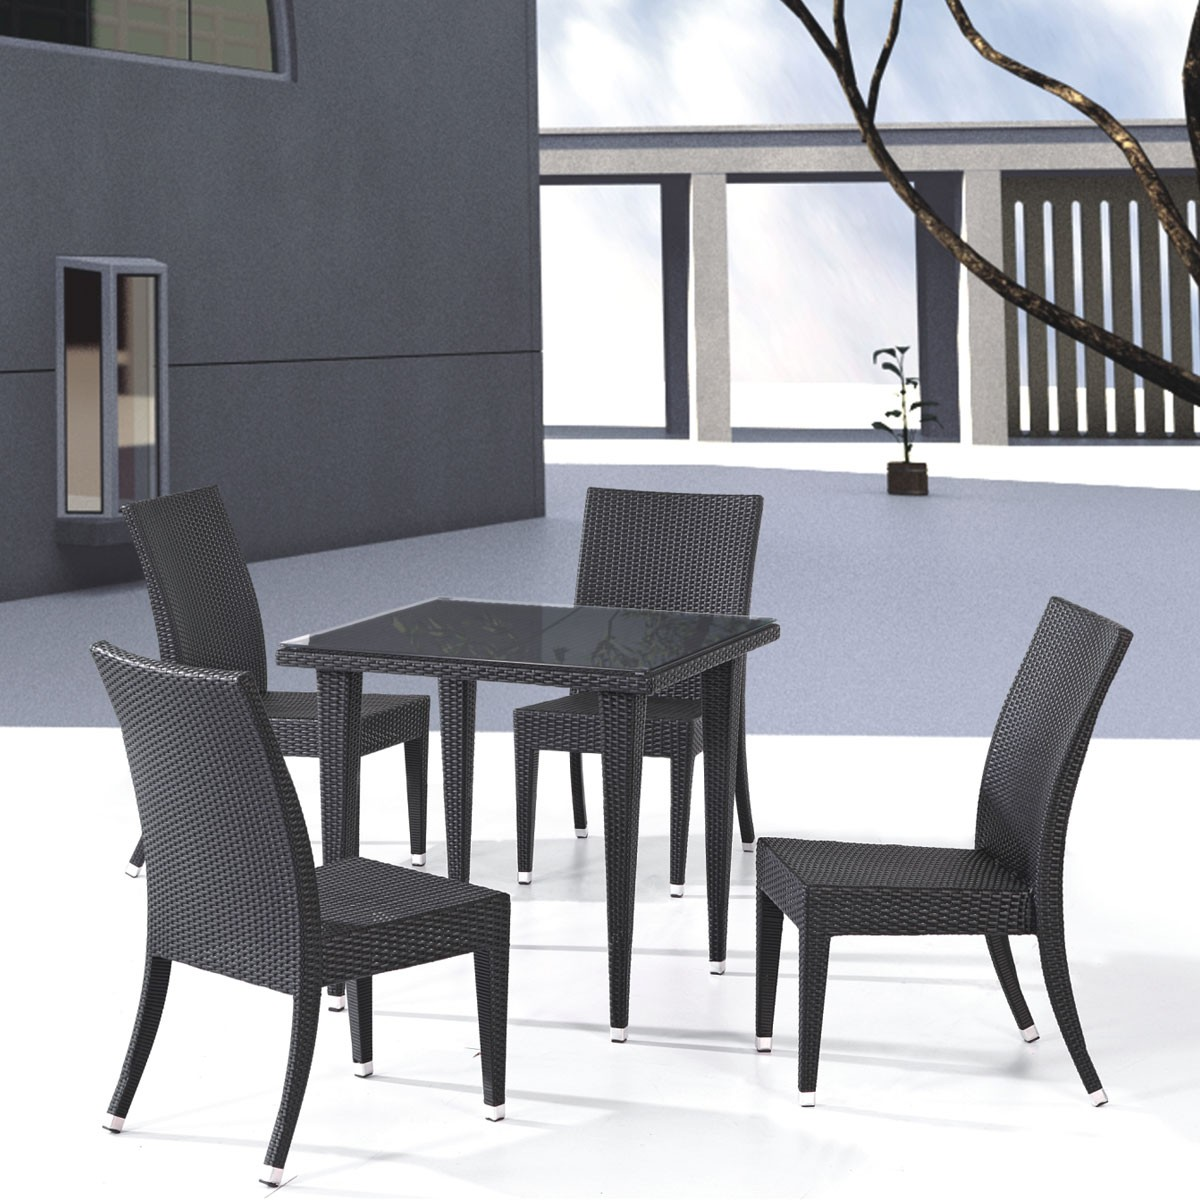 PE Rattan 5 Pieces Dining Set: Dining Table, 4 Armless Chairs(LLS-6056+1056)